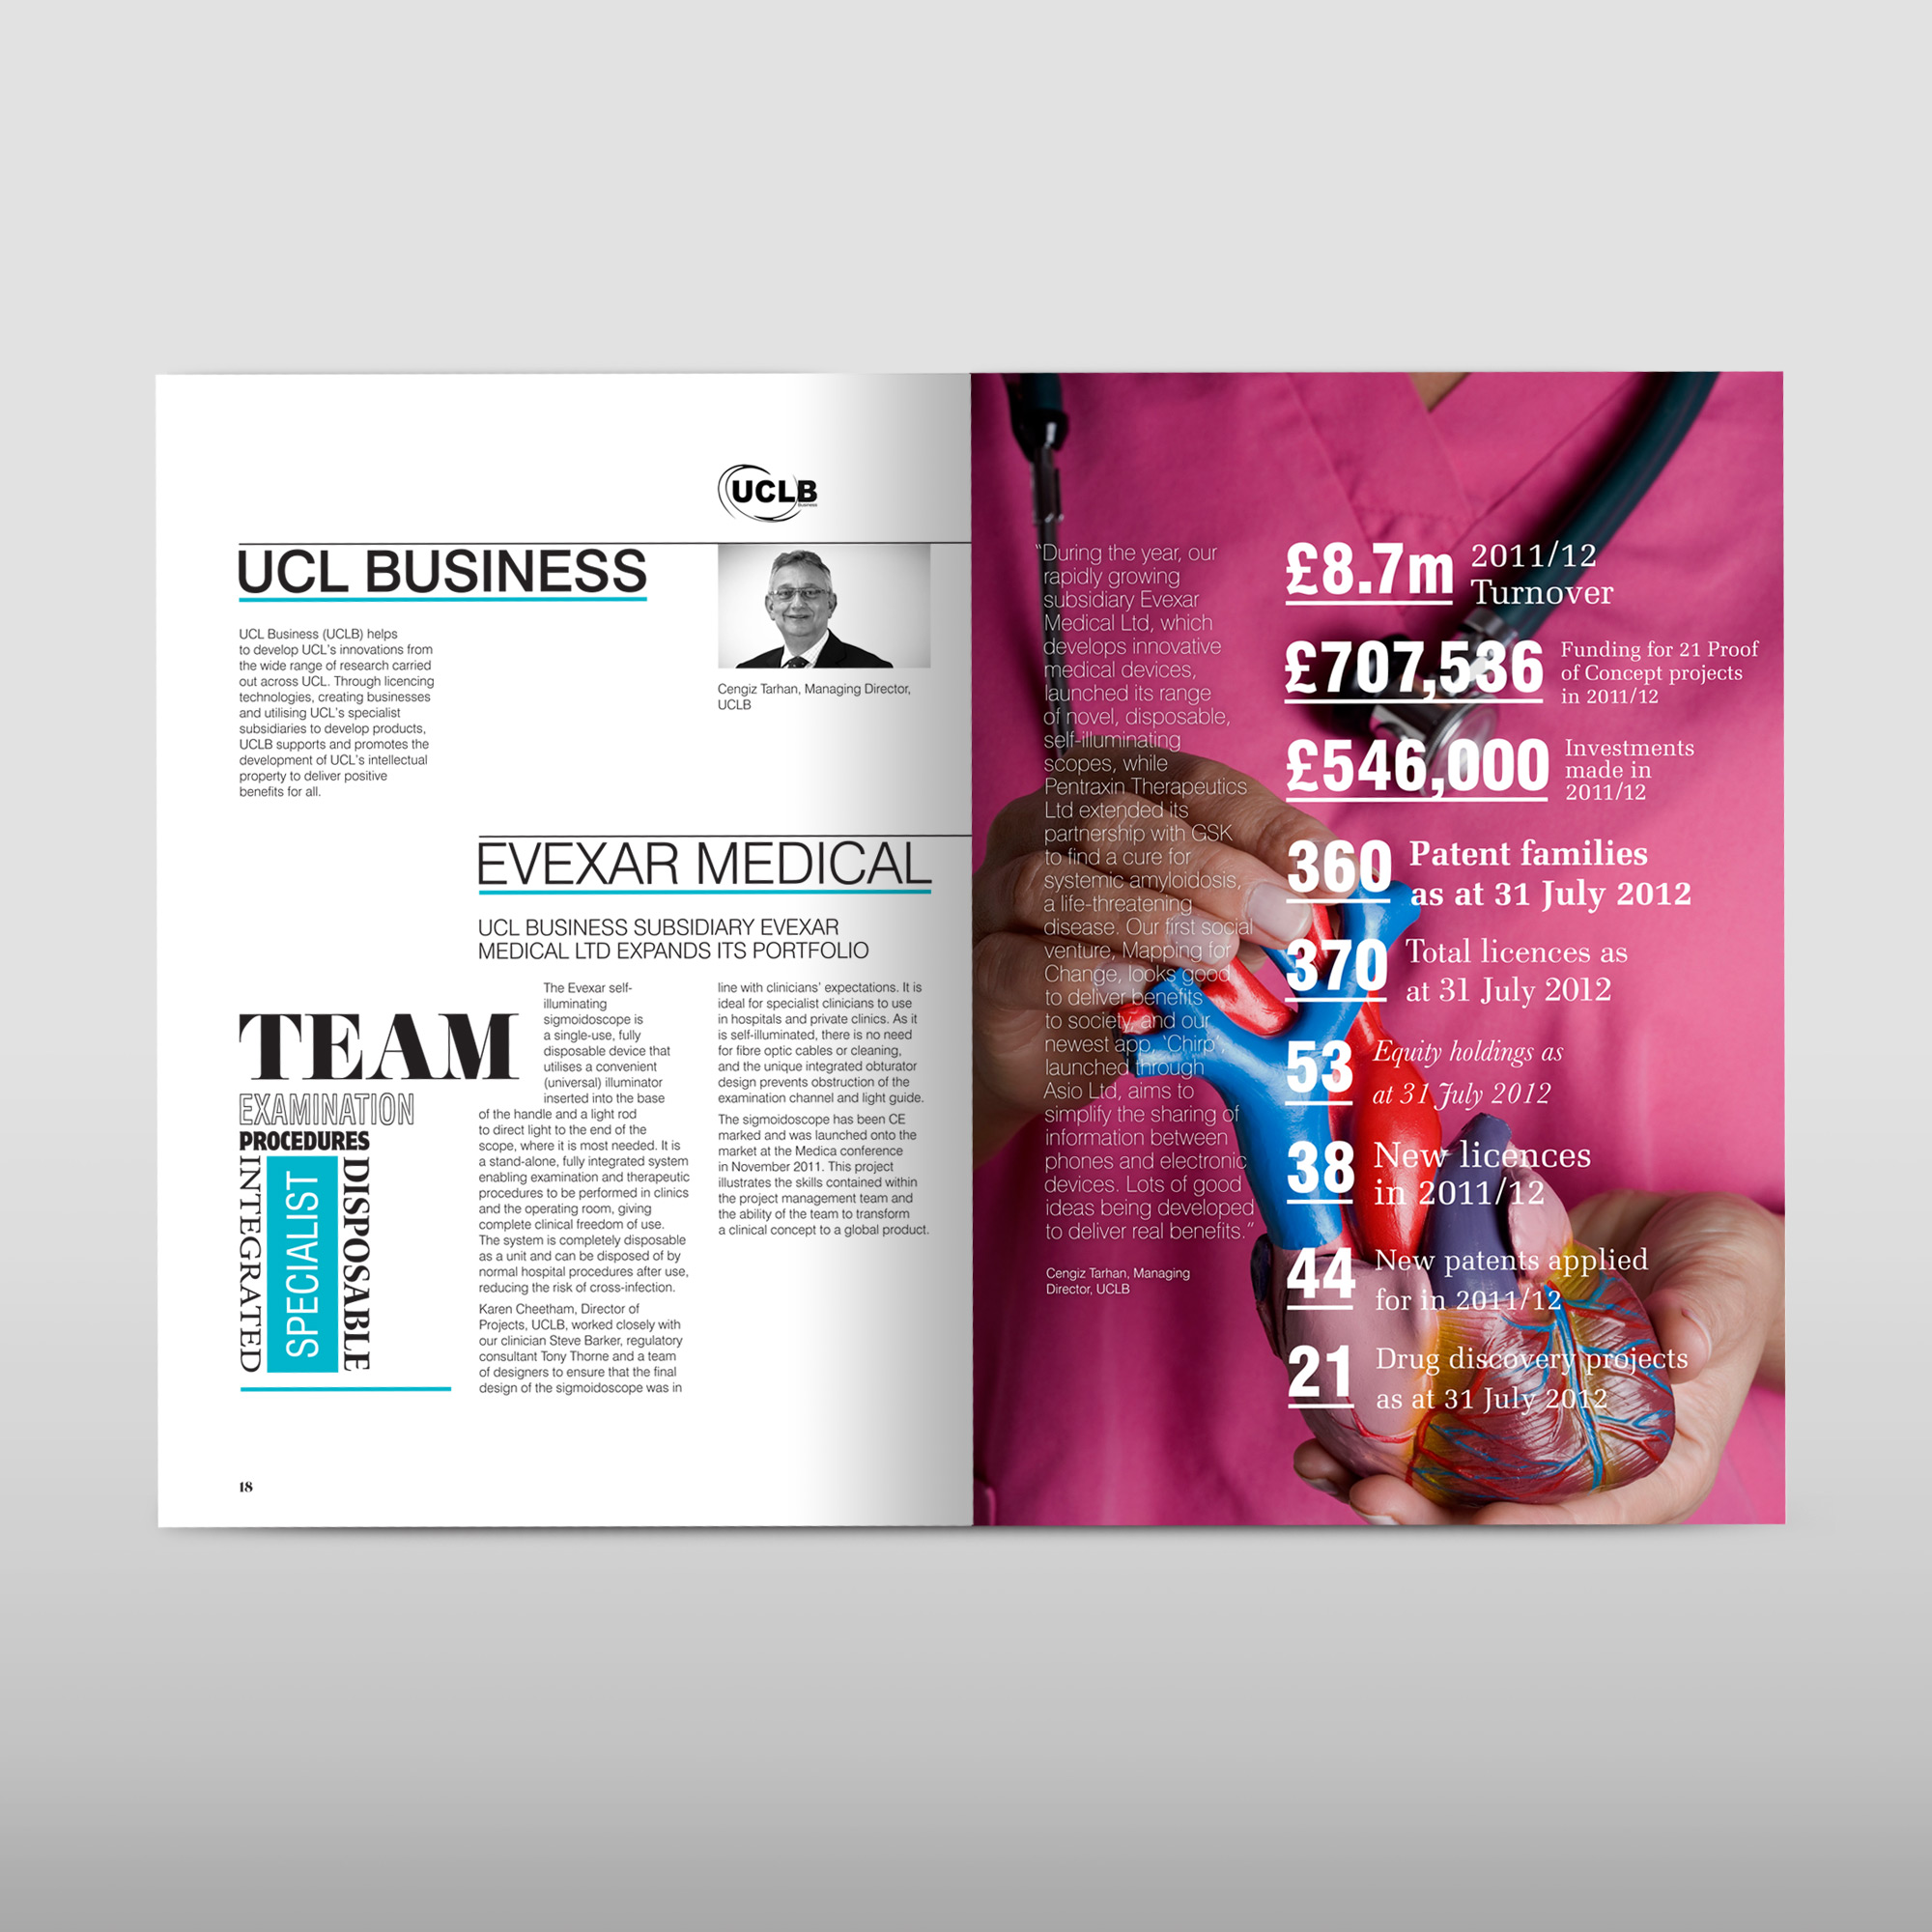 University college London annual report design contents.jpg